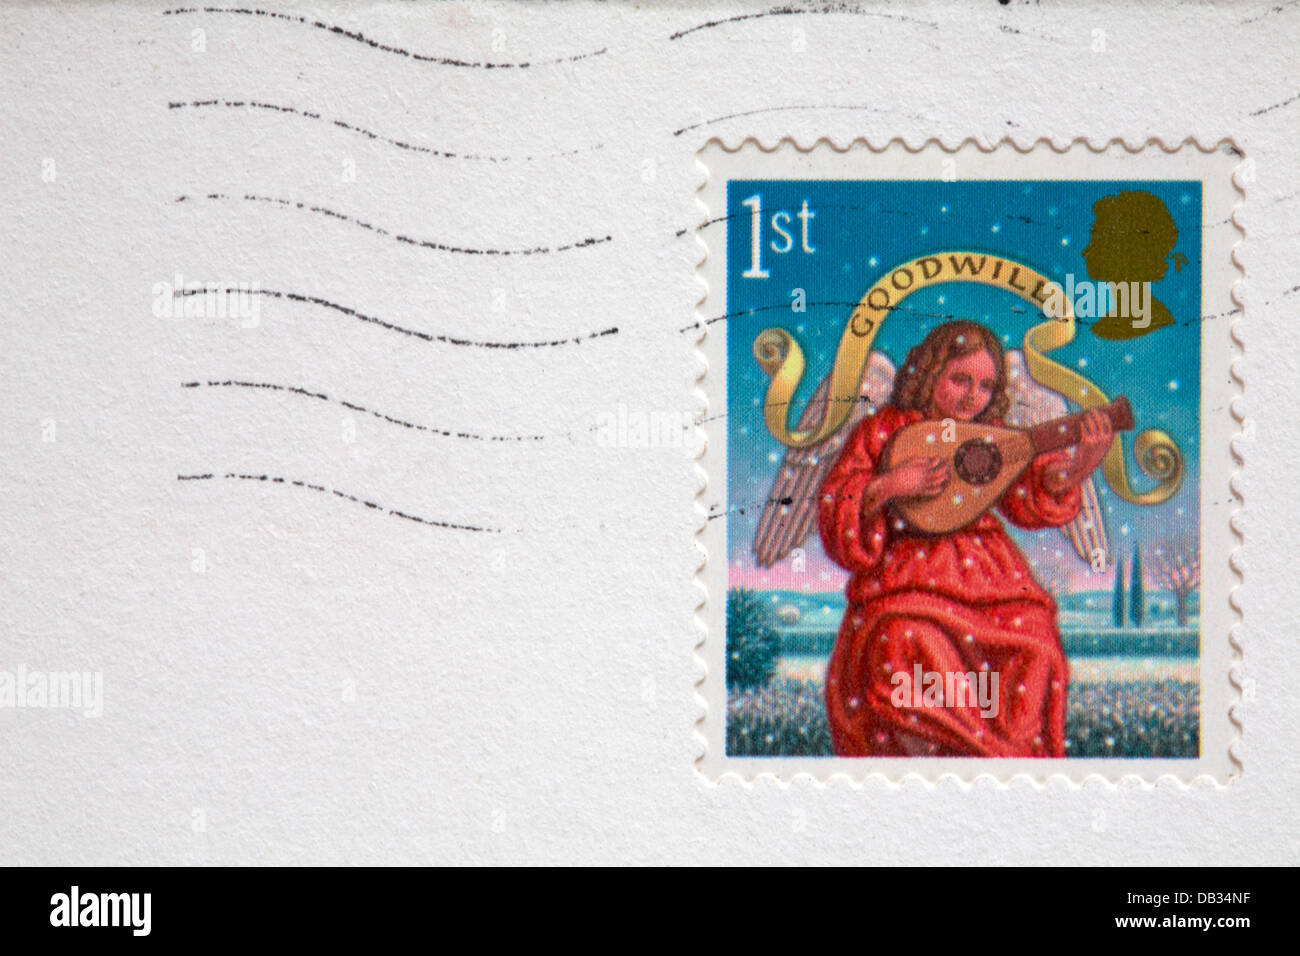 1st class the Angel of Goodwill Christmas stamp stuck on white envelope - Stock Image